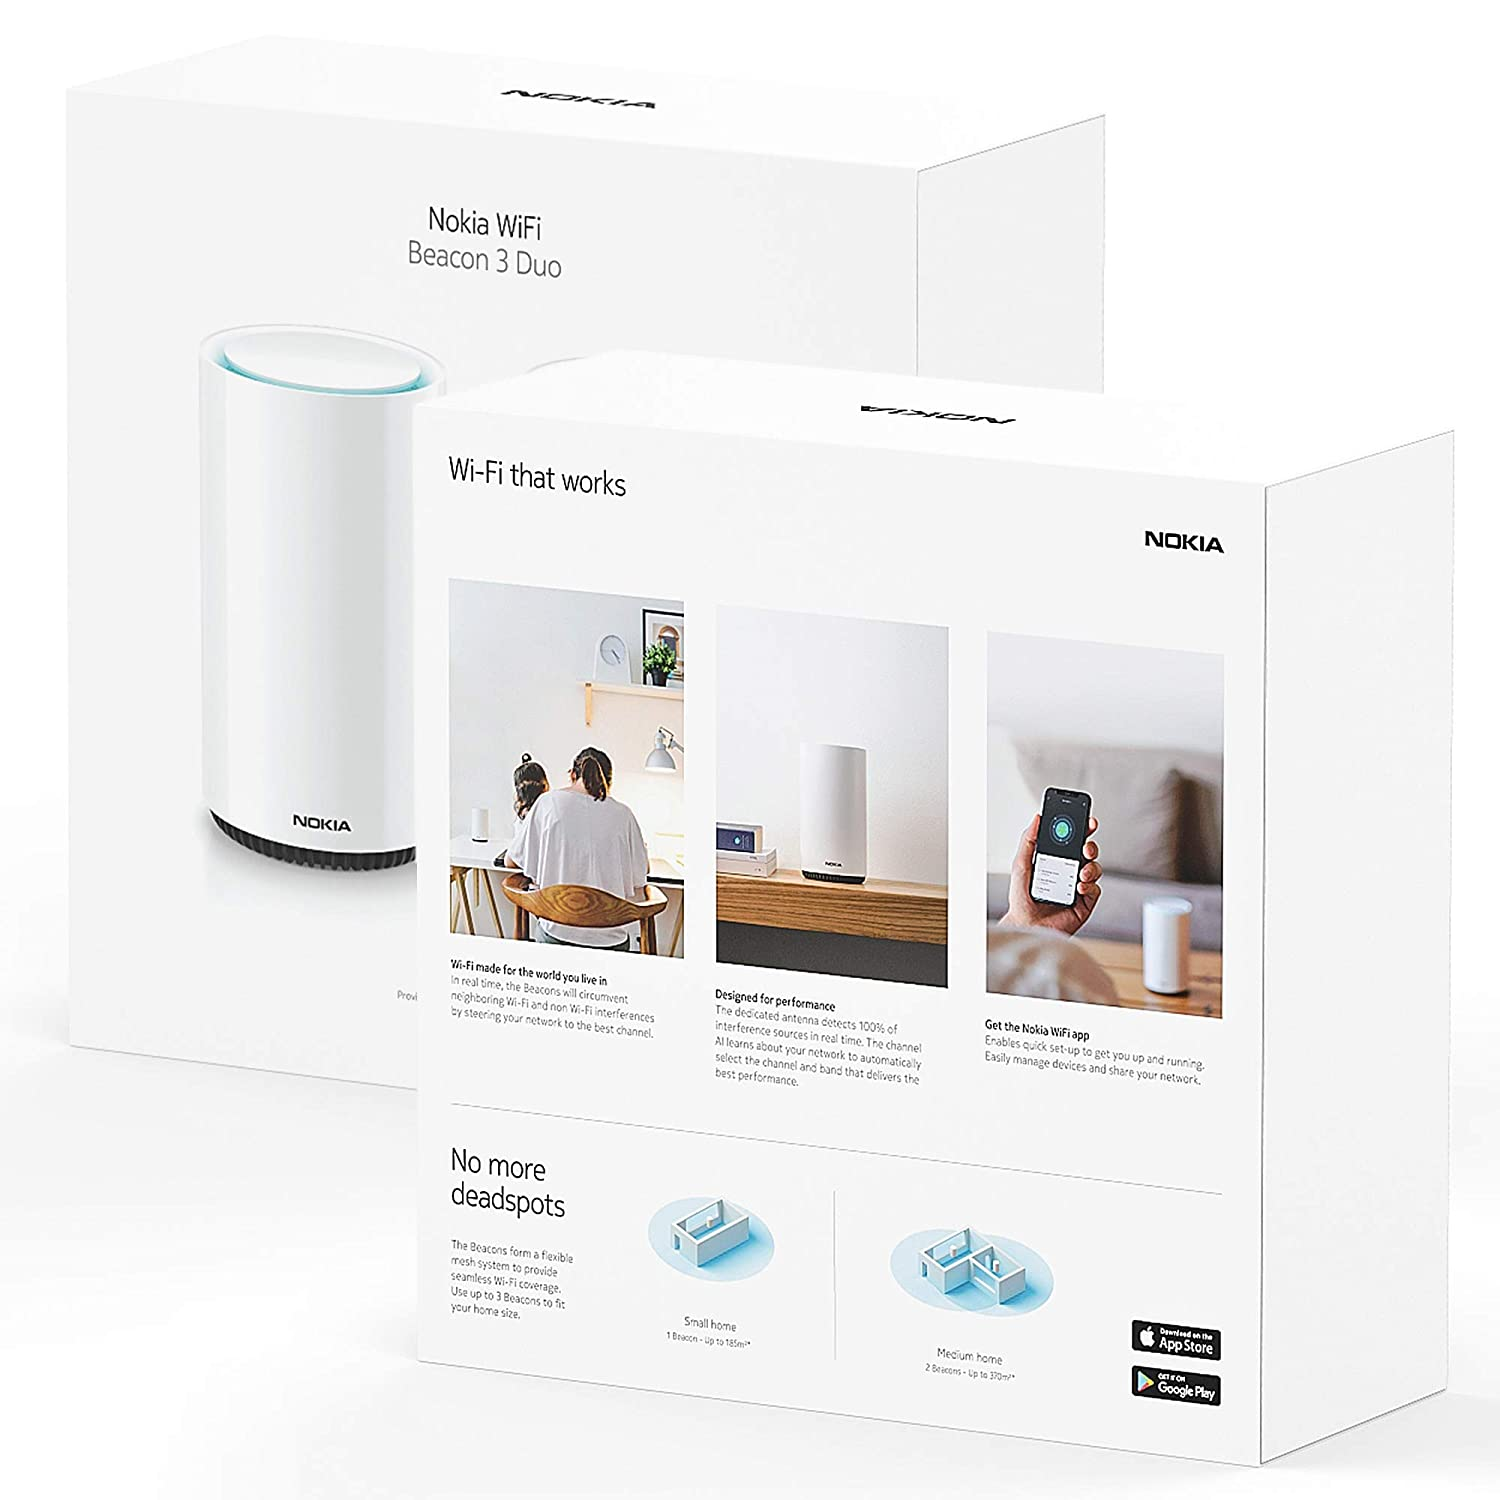 Single Nokia WiFi Beacon 3 Router System Intelligent 1-pack Connect Your Whole House Wifi Network ULTRA FAST Self-Healing Mesh Router System Seamless Whole Home WiFi Coverage Extender